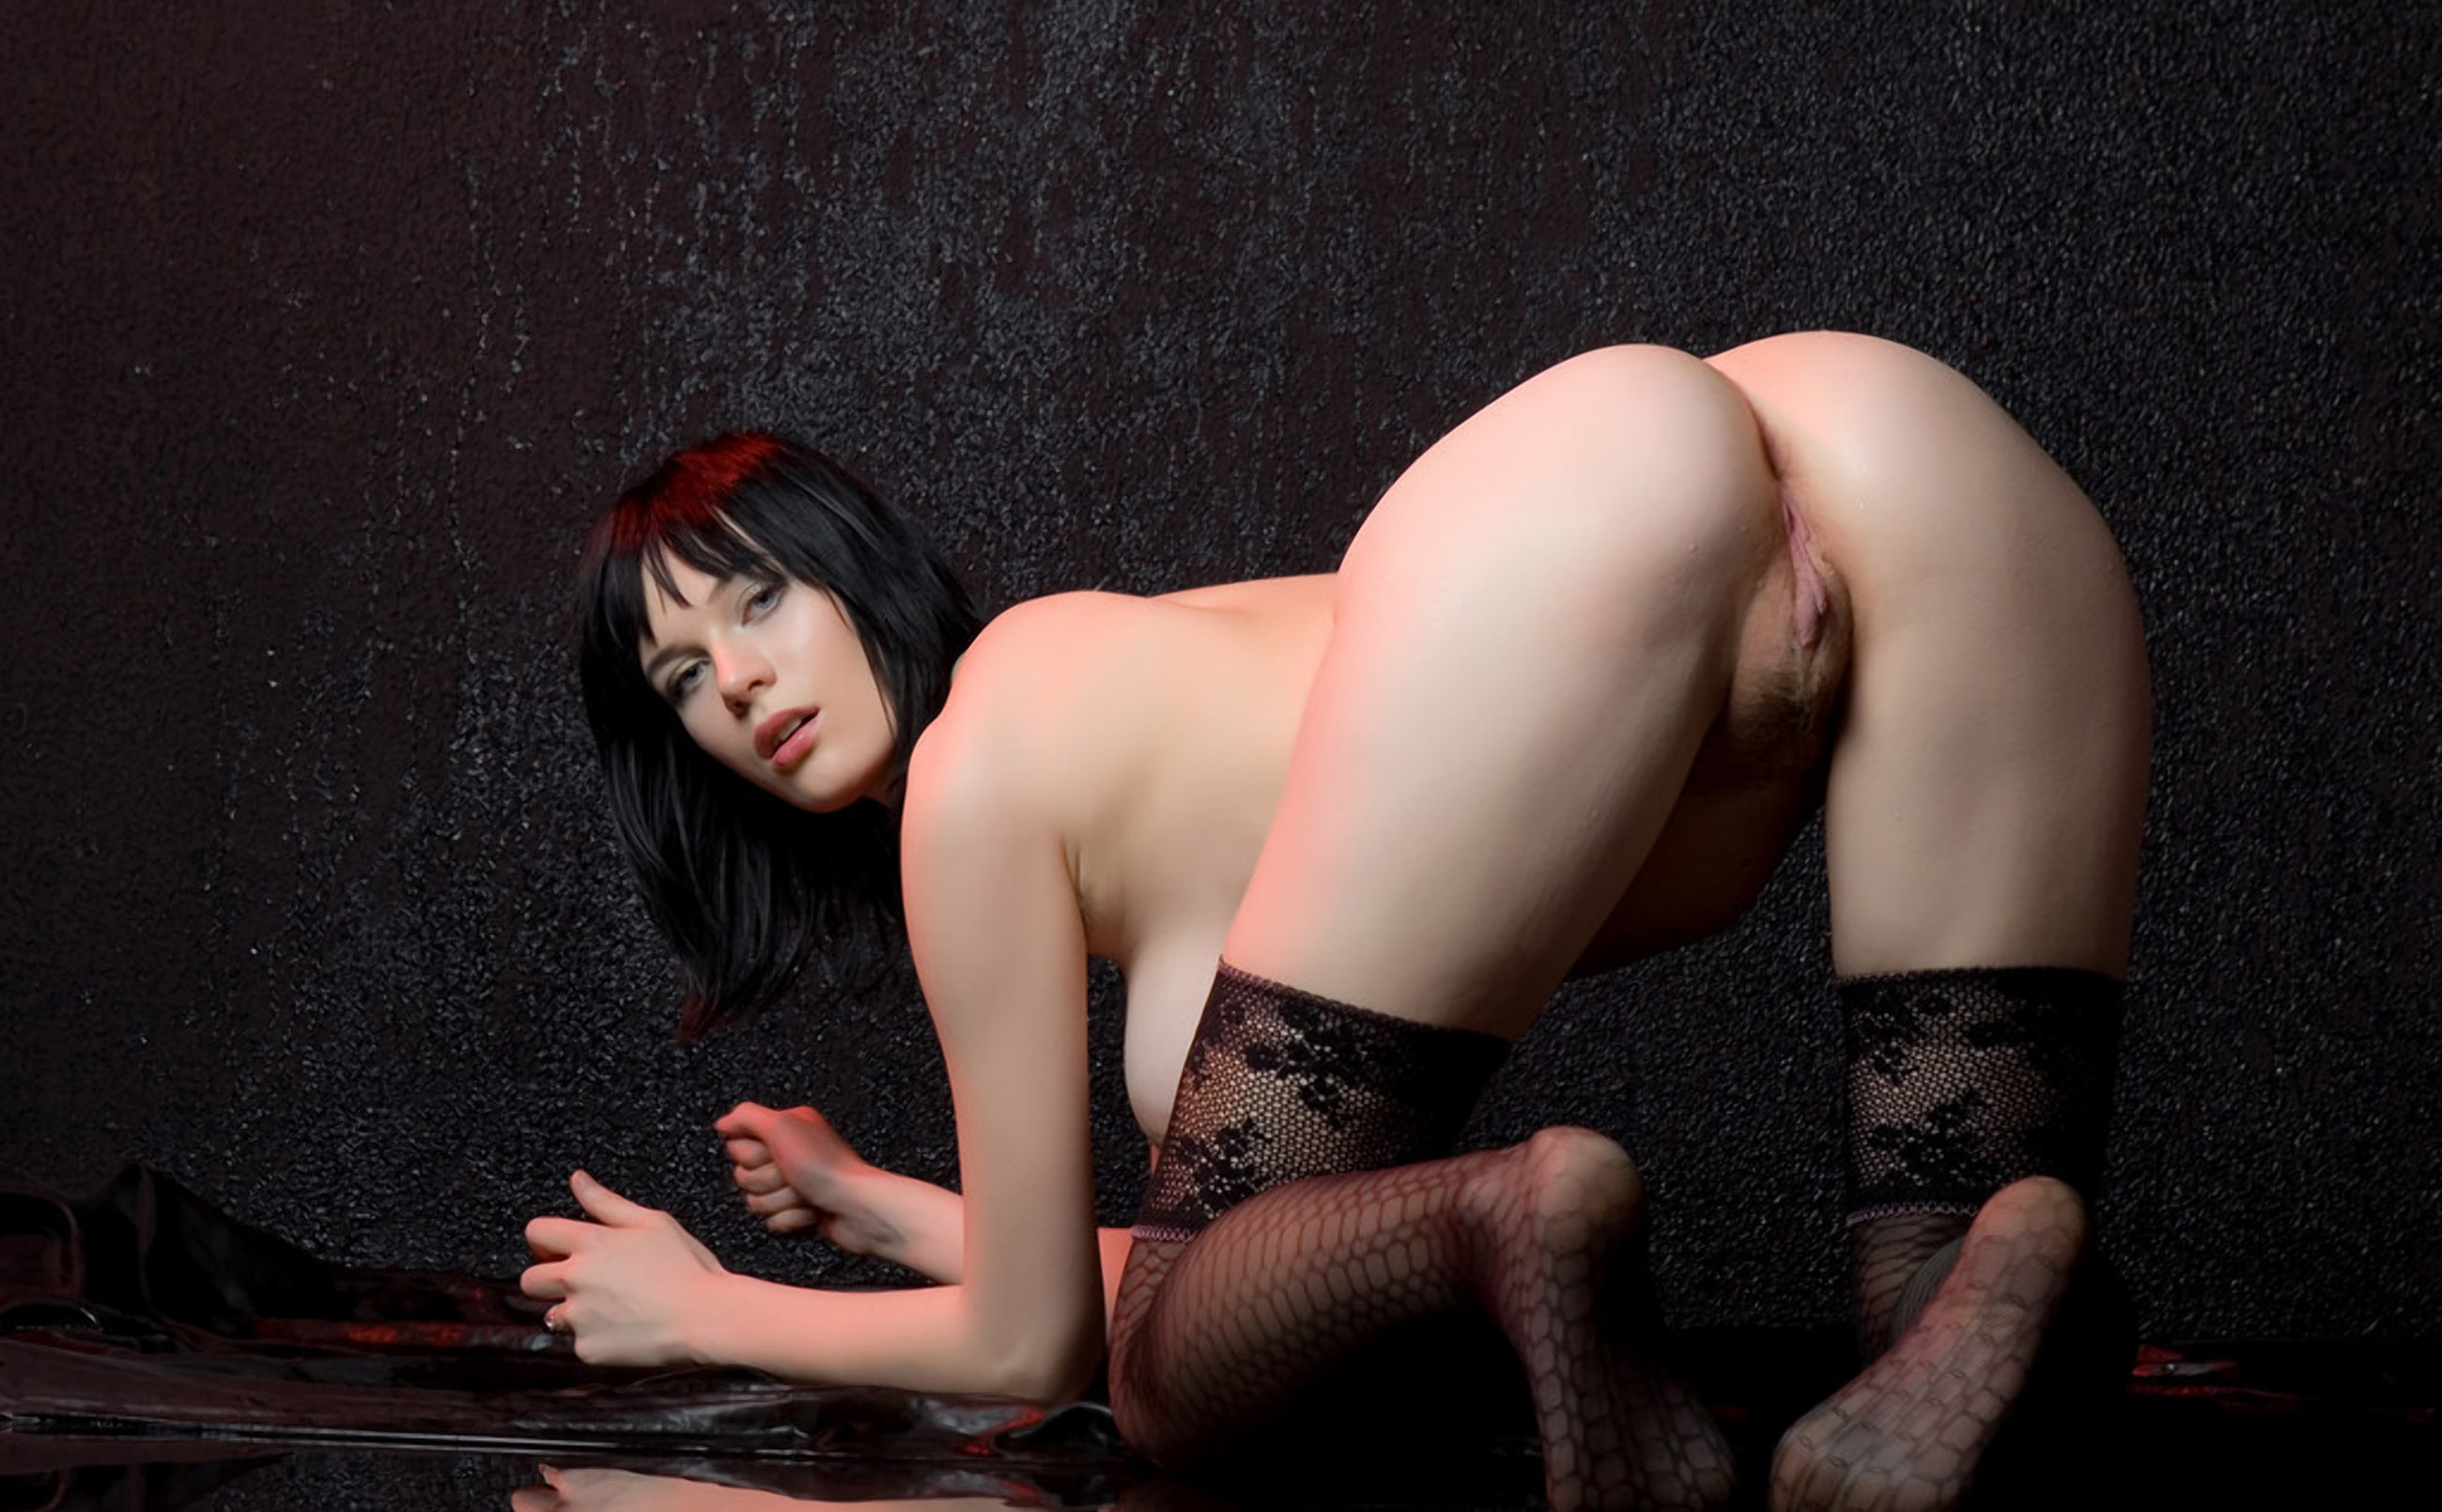 Think, that Long legs rear view nude are not